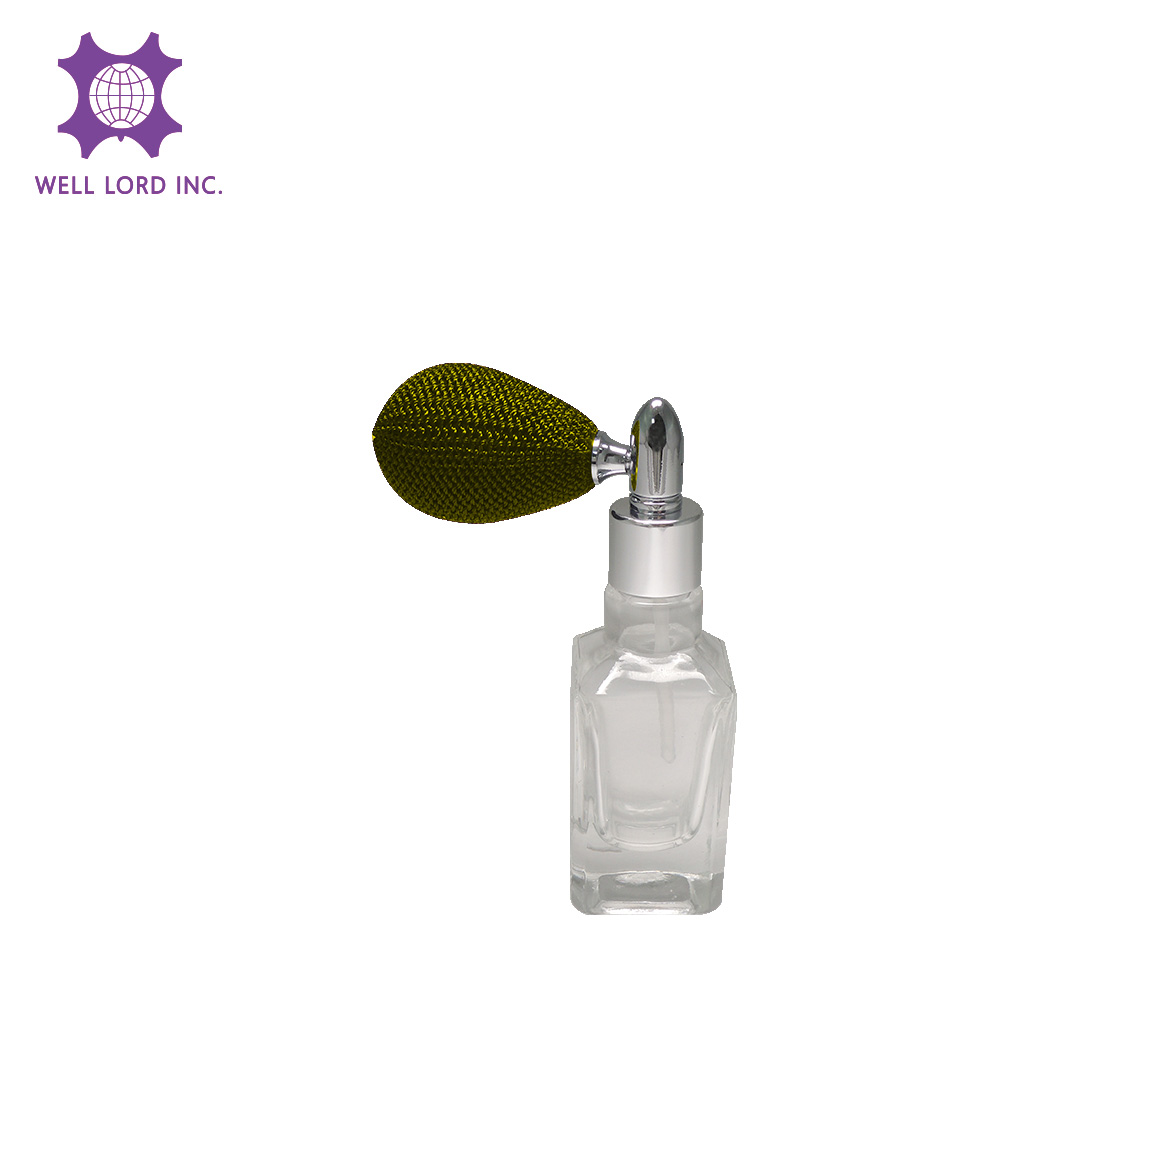 Splendid 13ml elegant clear glass bottle with sliver neck and cedar thread bulb perfume woman